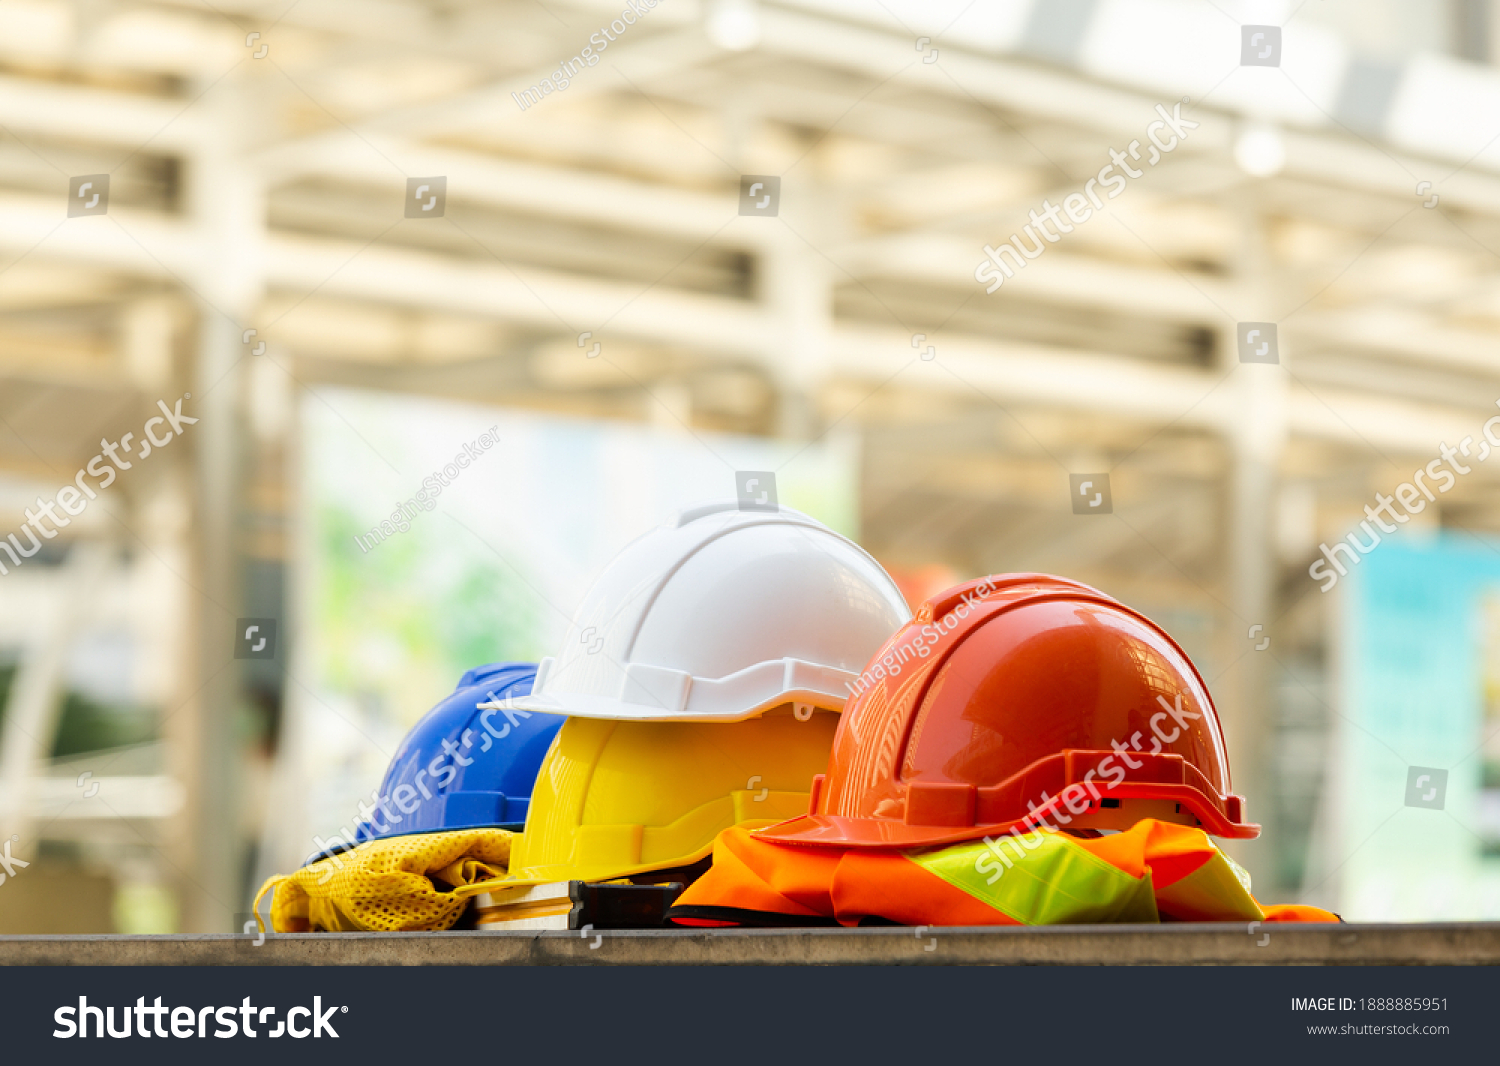 Close up Blue, yellow, white and red hard safety helmet hats for safety project of workman as engineering or project worker place on concrete floor city outdoor. #1888885951